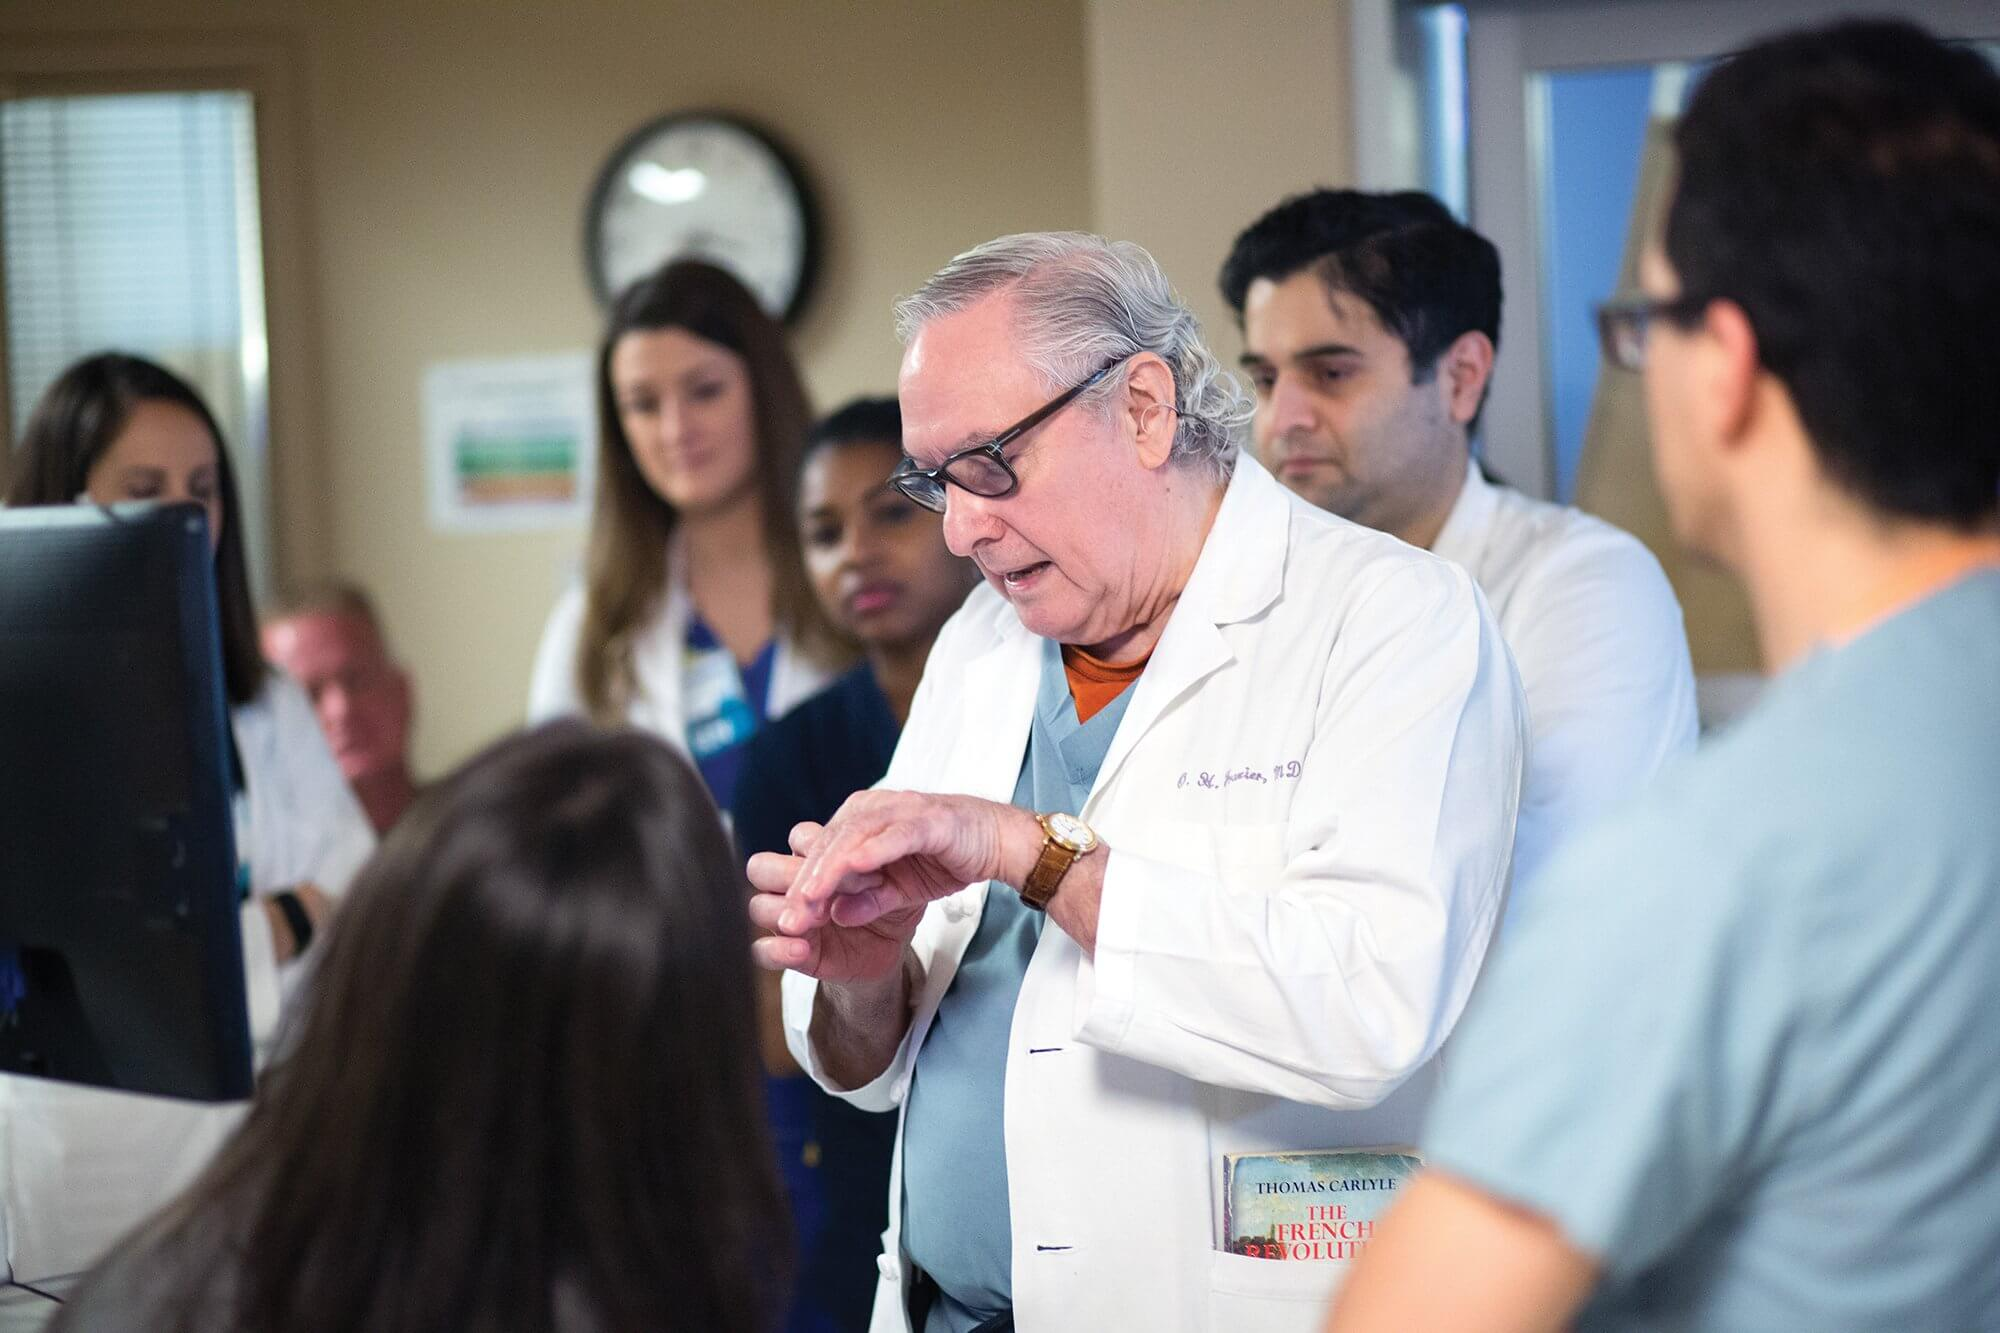 3:26 p.m.: Frazier demonstrates the way blood is pushed in and out of the heart after a left ventricular assist device (LVAD) is implanted.